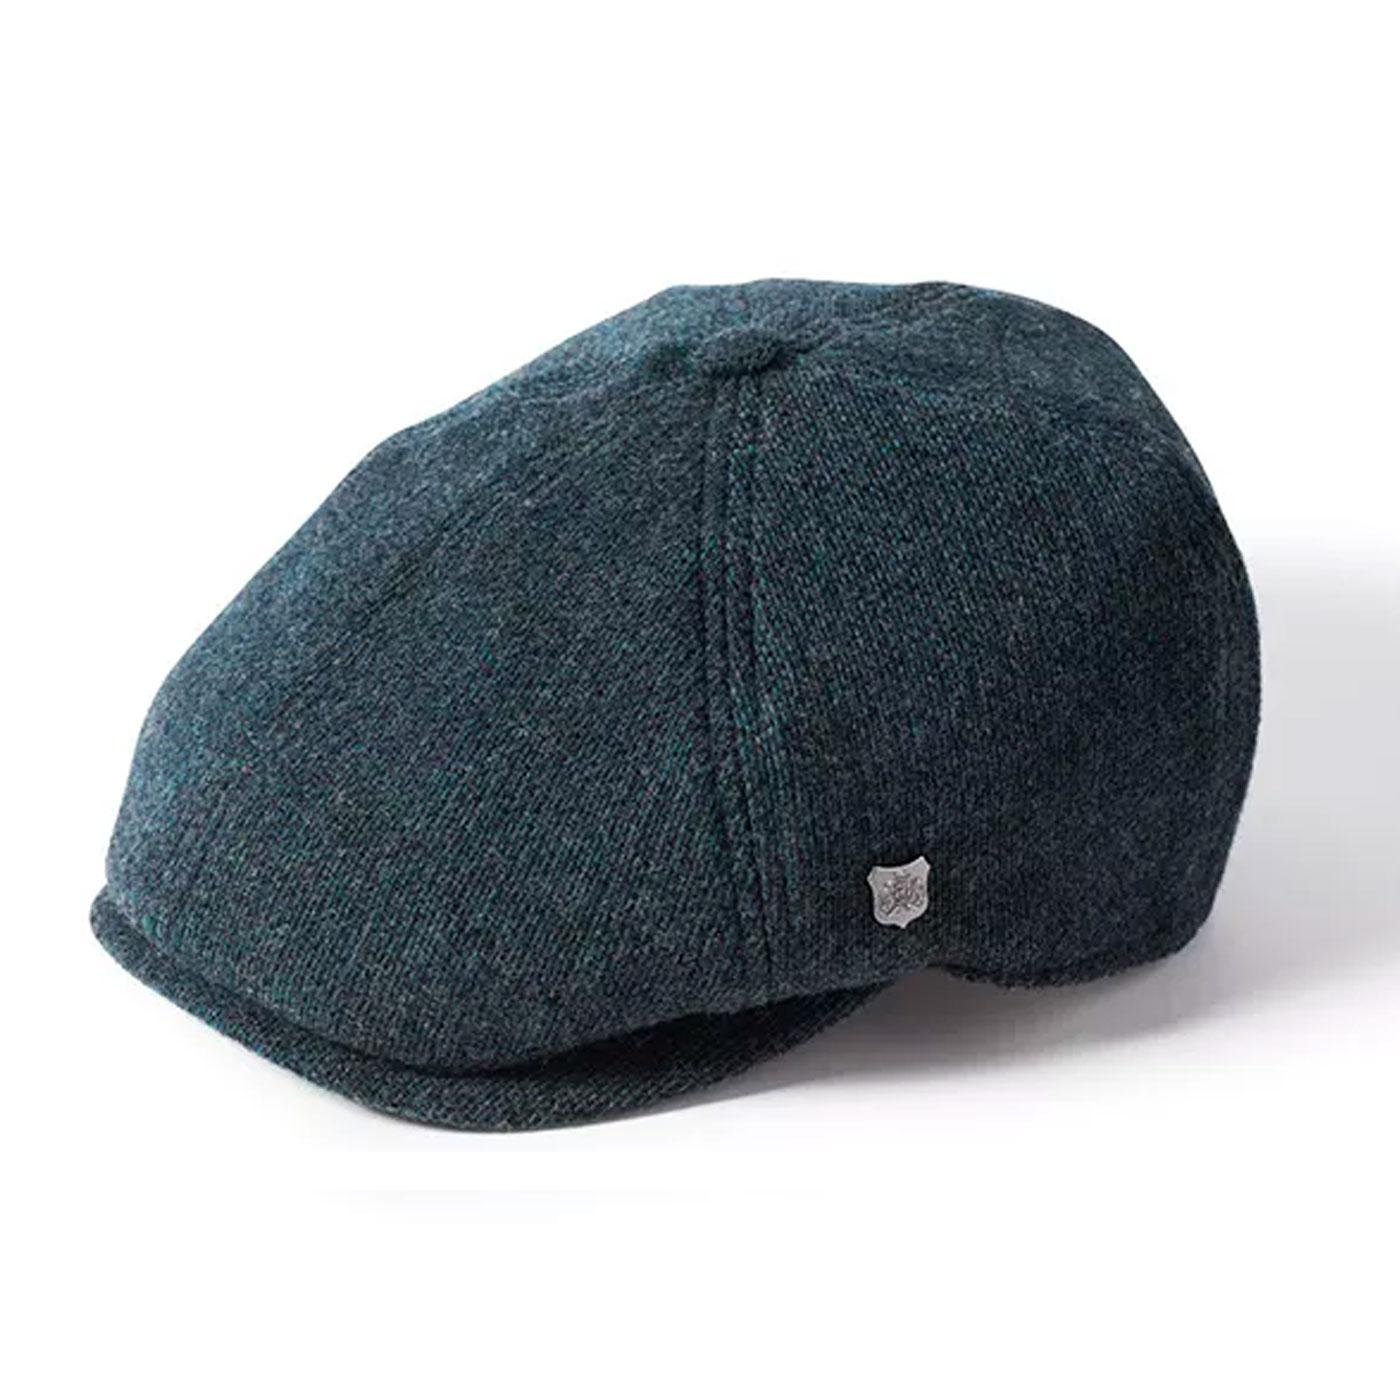 Hudson FAILSWORTH Abraham Moon Spitfire Cap (Navy)